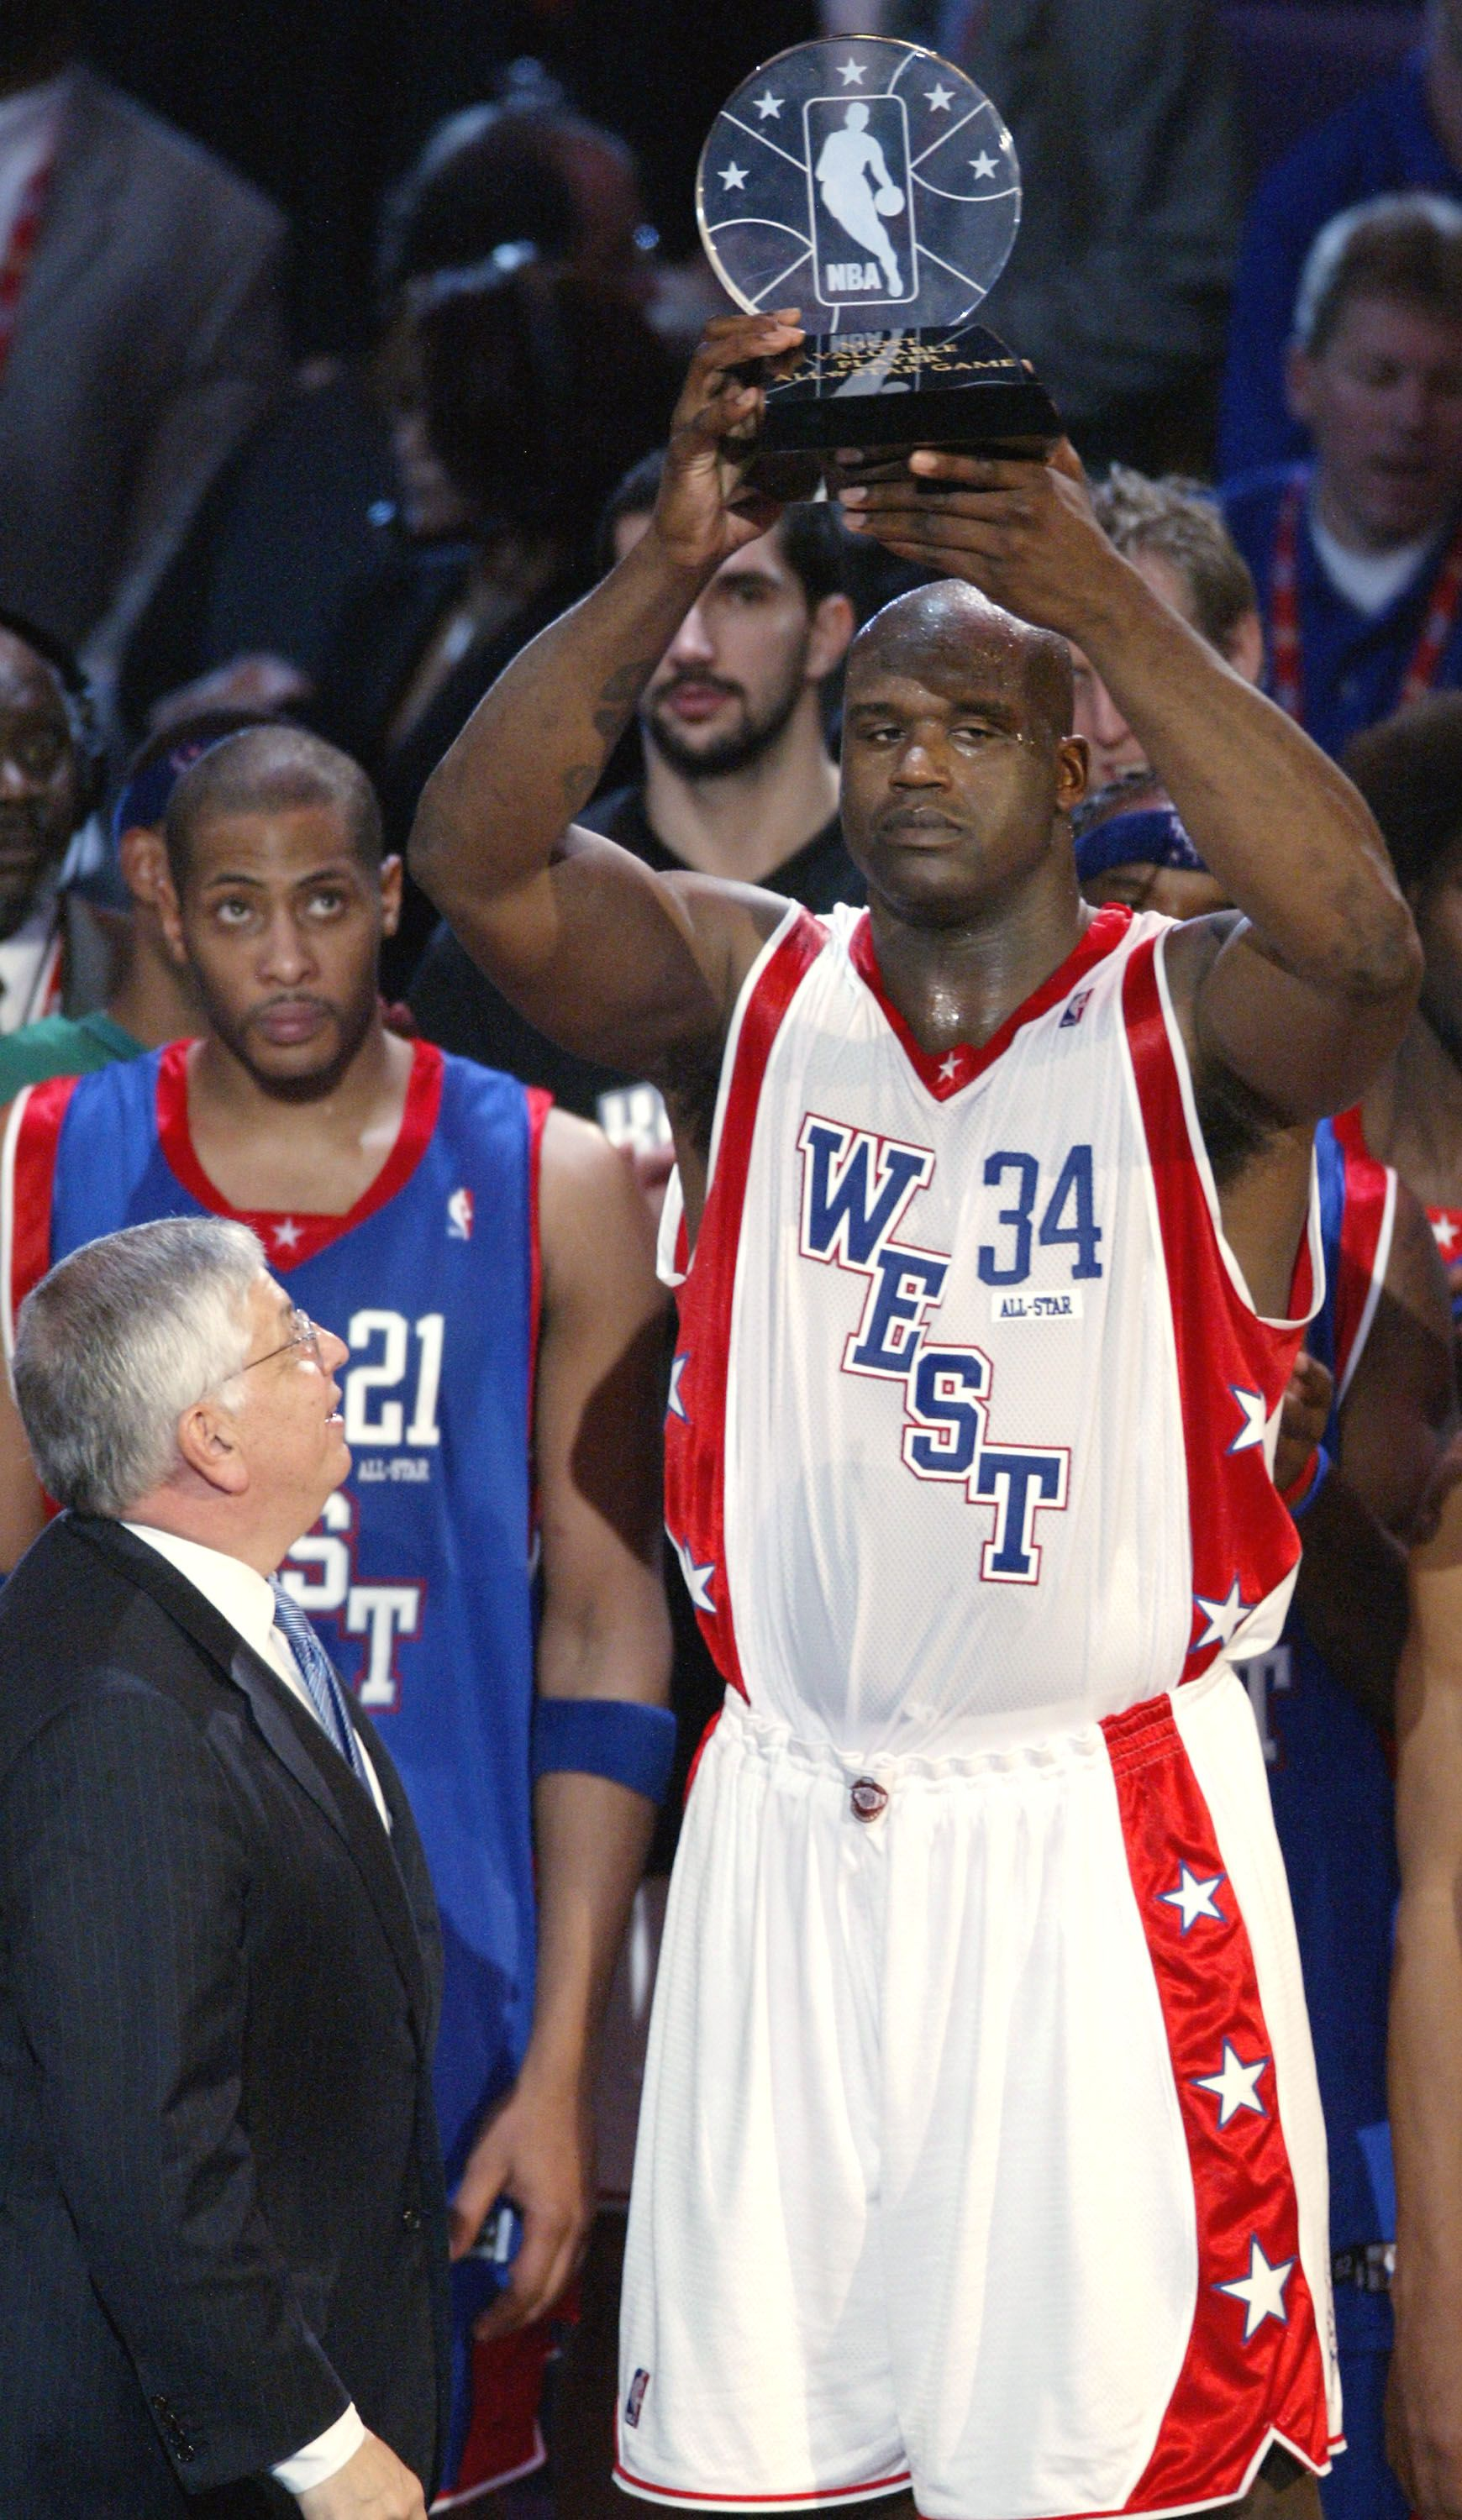 Shaquille O'Neal of the home team LALakers was named MVP